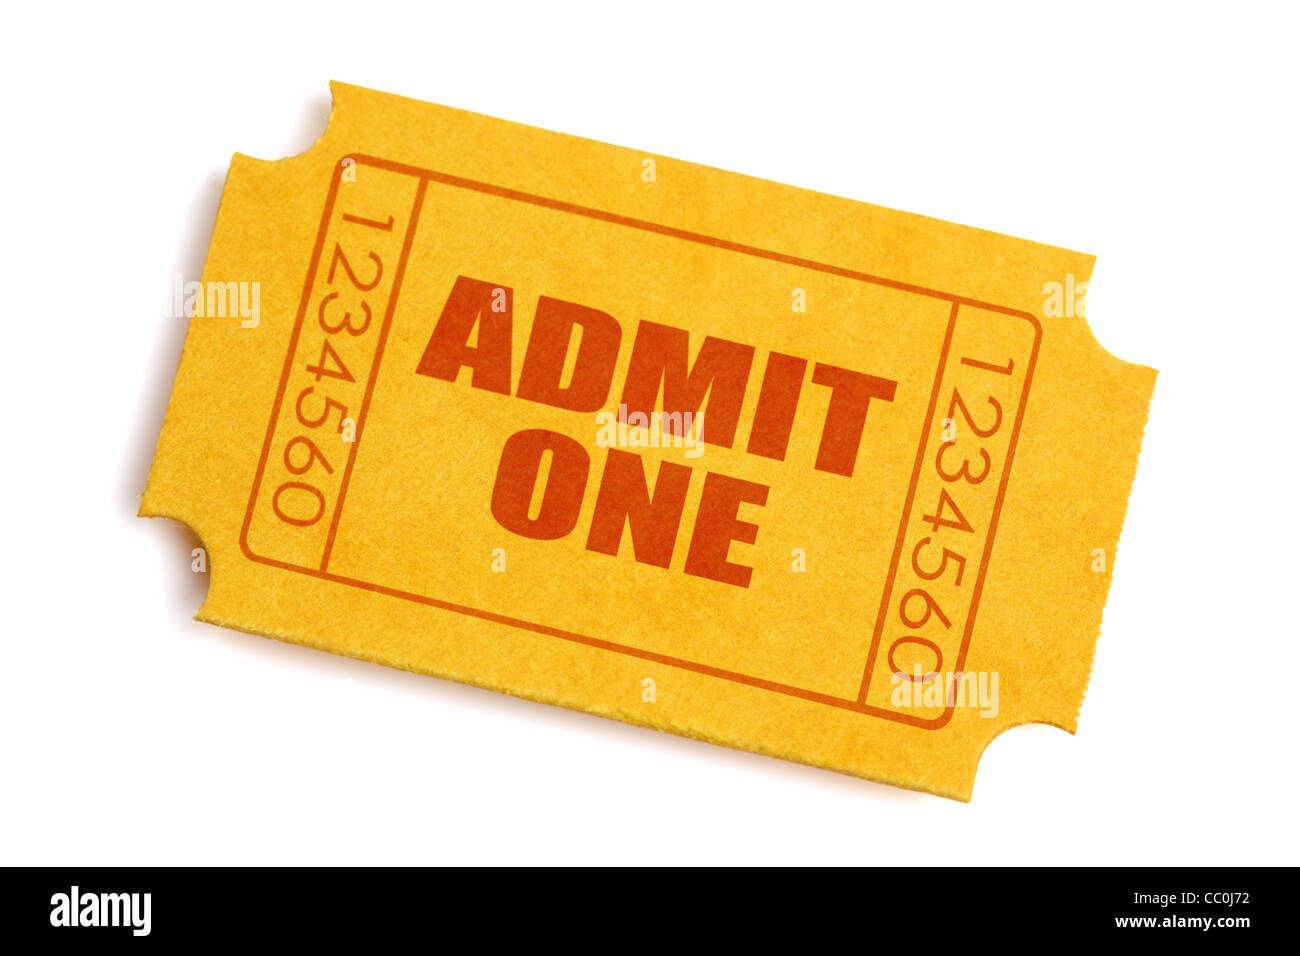 Admission ticket - Stock Image